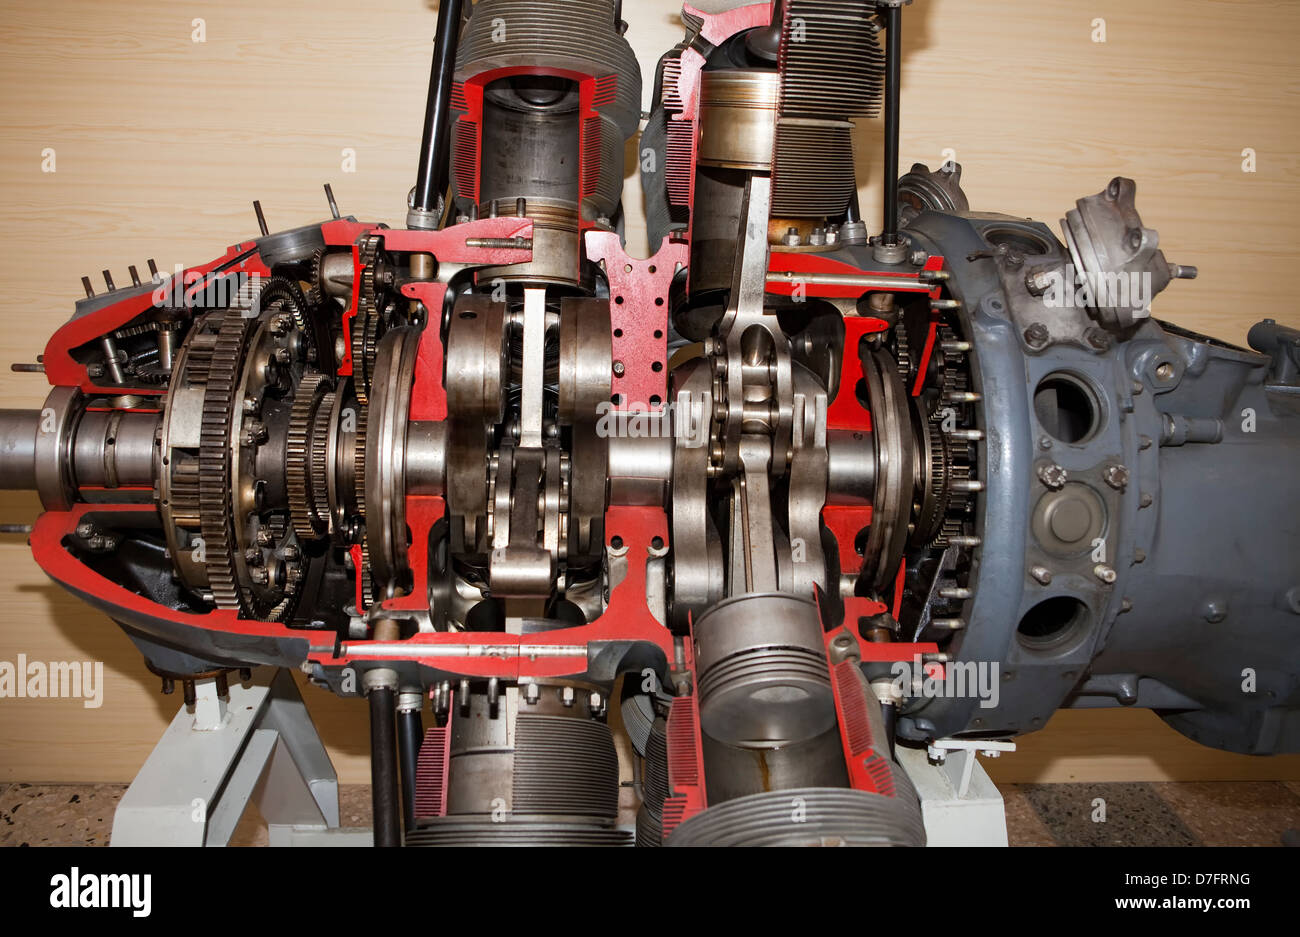 radial engine stock photos & radial engine stock images alamy full car engine diagram the radial engine, 1939, pratt & whitney or p & w, aircraft collection